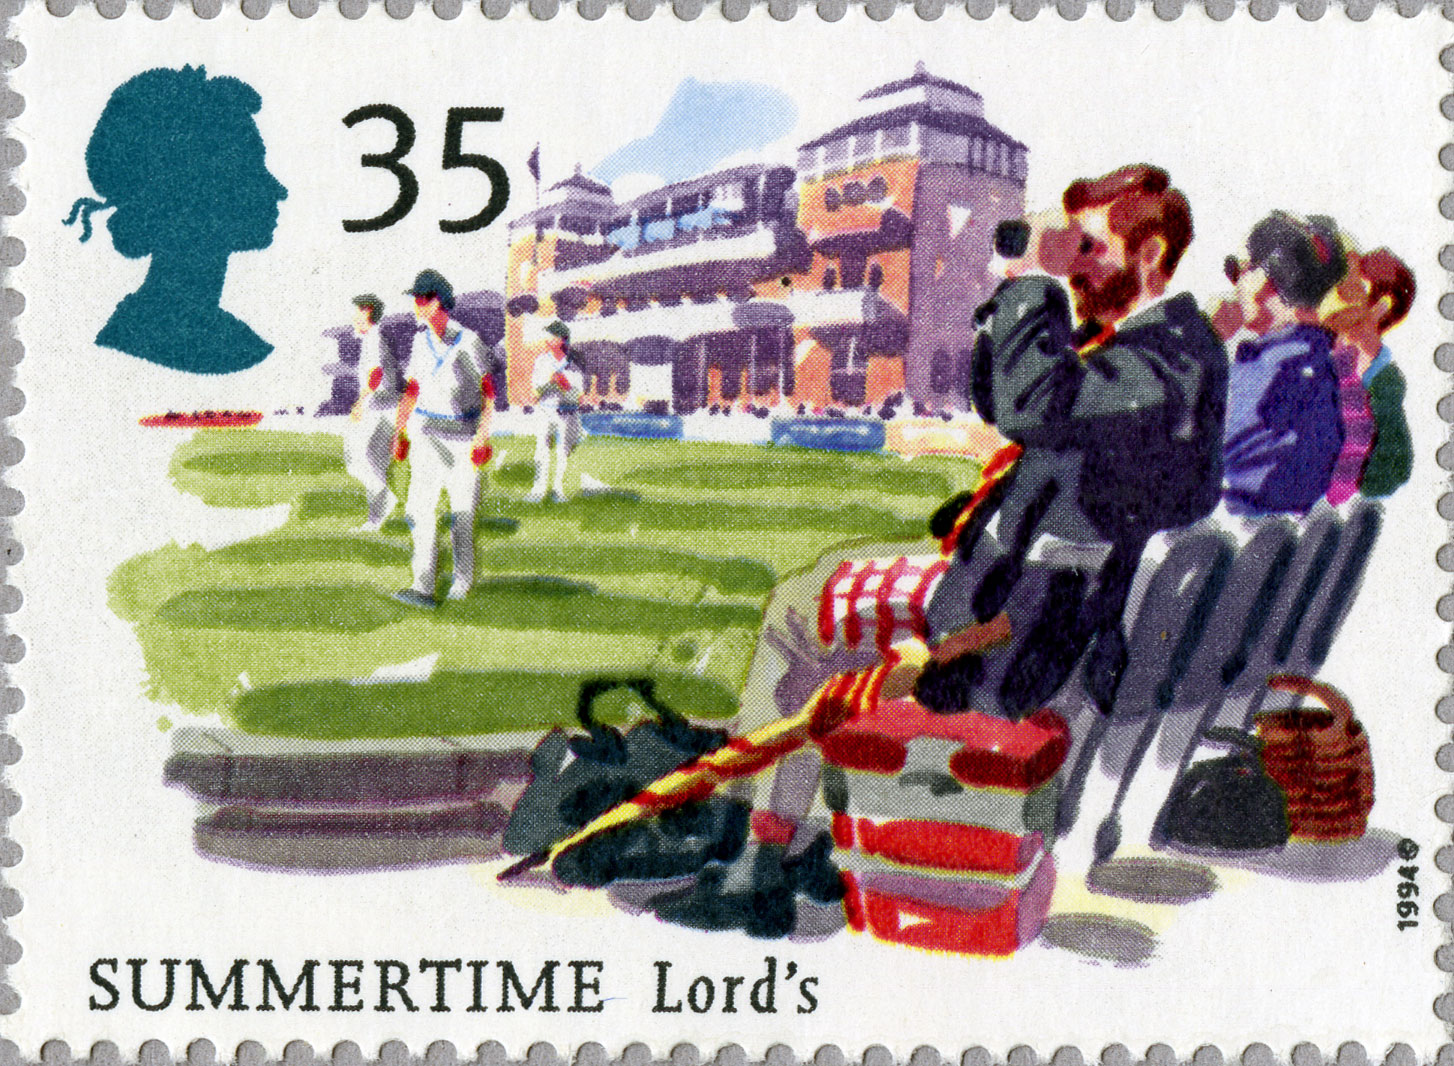 The issued design for 35p stamp featuring spectators watching cricket at Lord's.